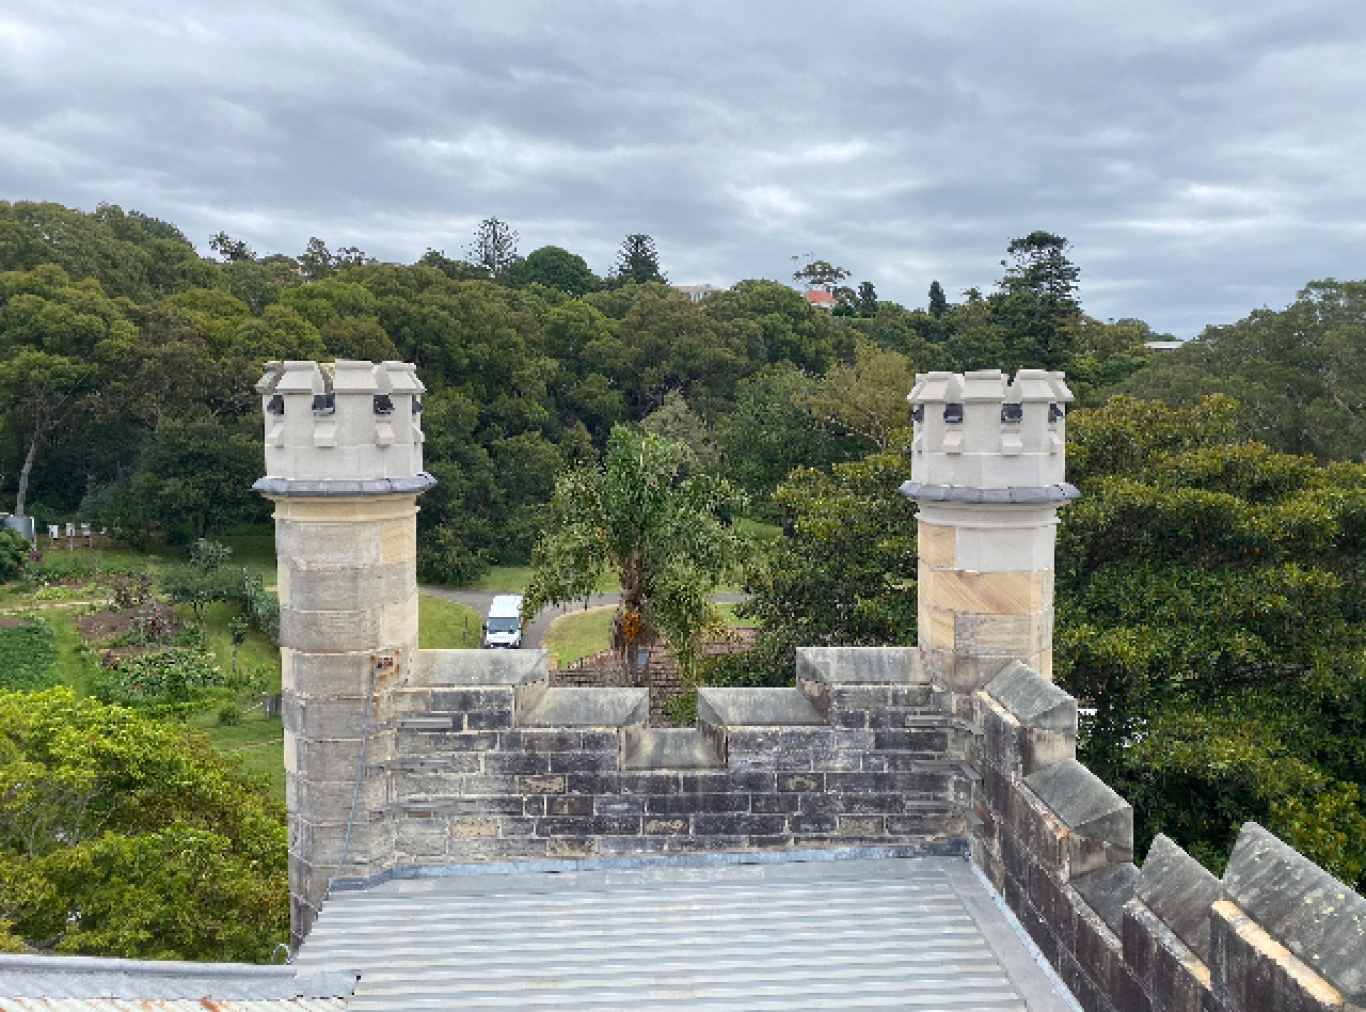 Looking over a pair of sandstone turrets towards treetops and garden.